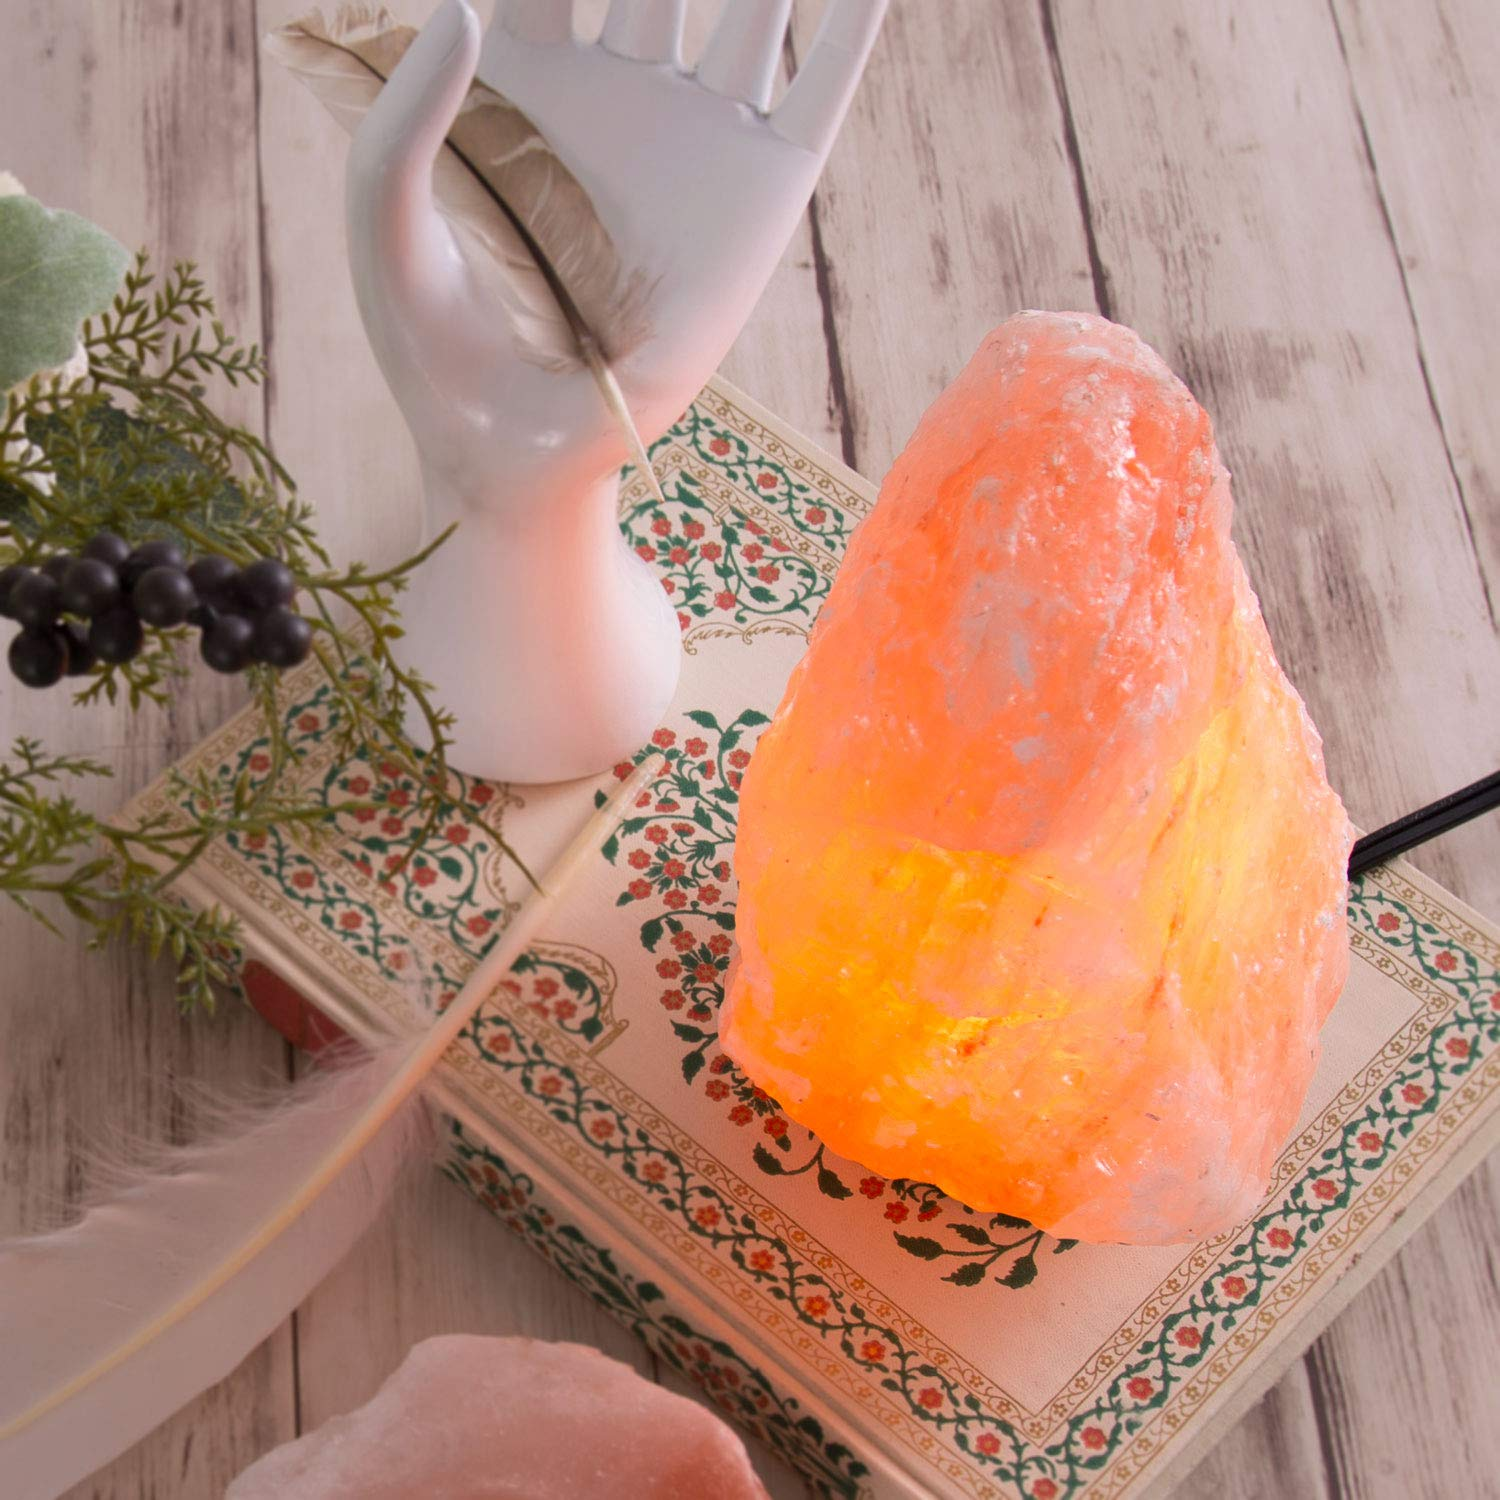 Crystal Allies: Set of 6 Natural 6'' to 8'', 5-8 lbs Himalayan Salt Lamp with Dimmable Switch and 6' UL-Listed Cord - Pack of 6 by Crystal Allies (Image #6)